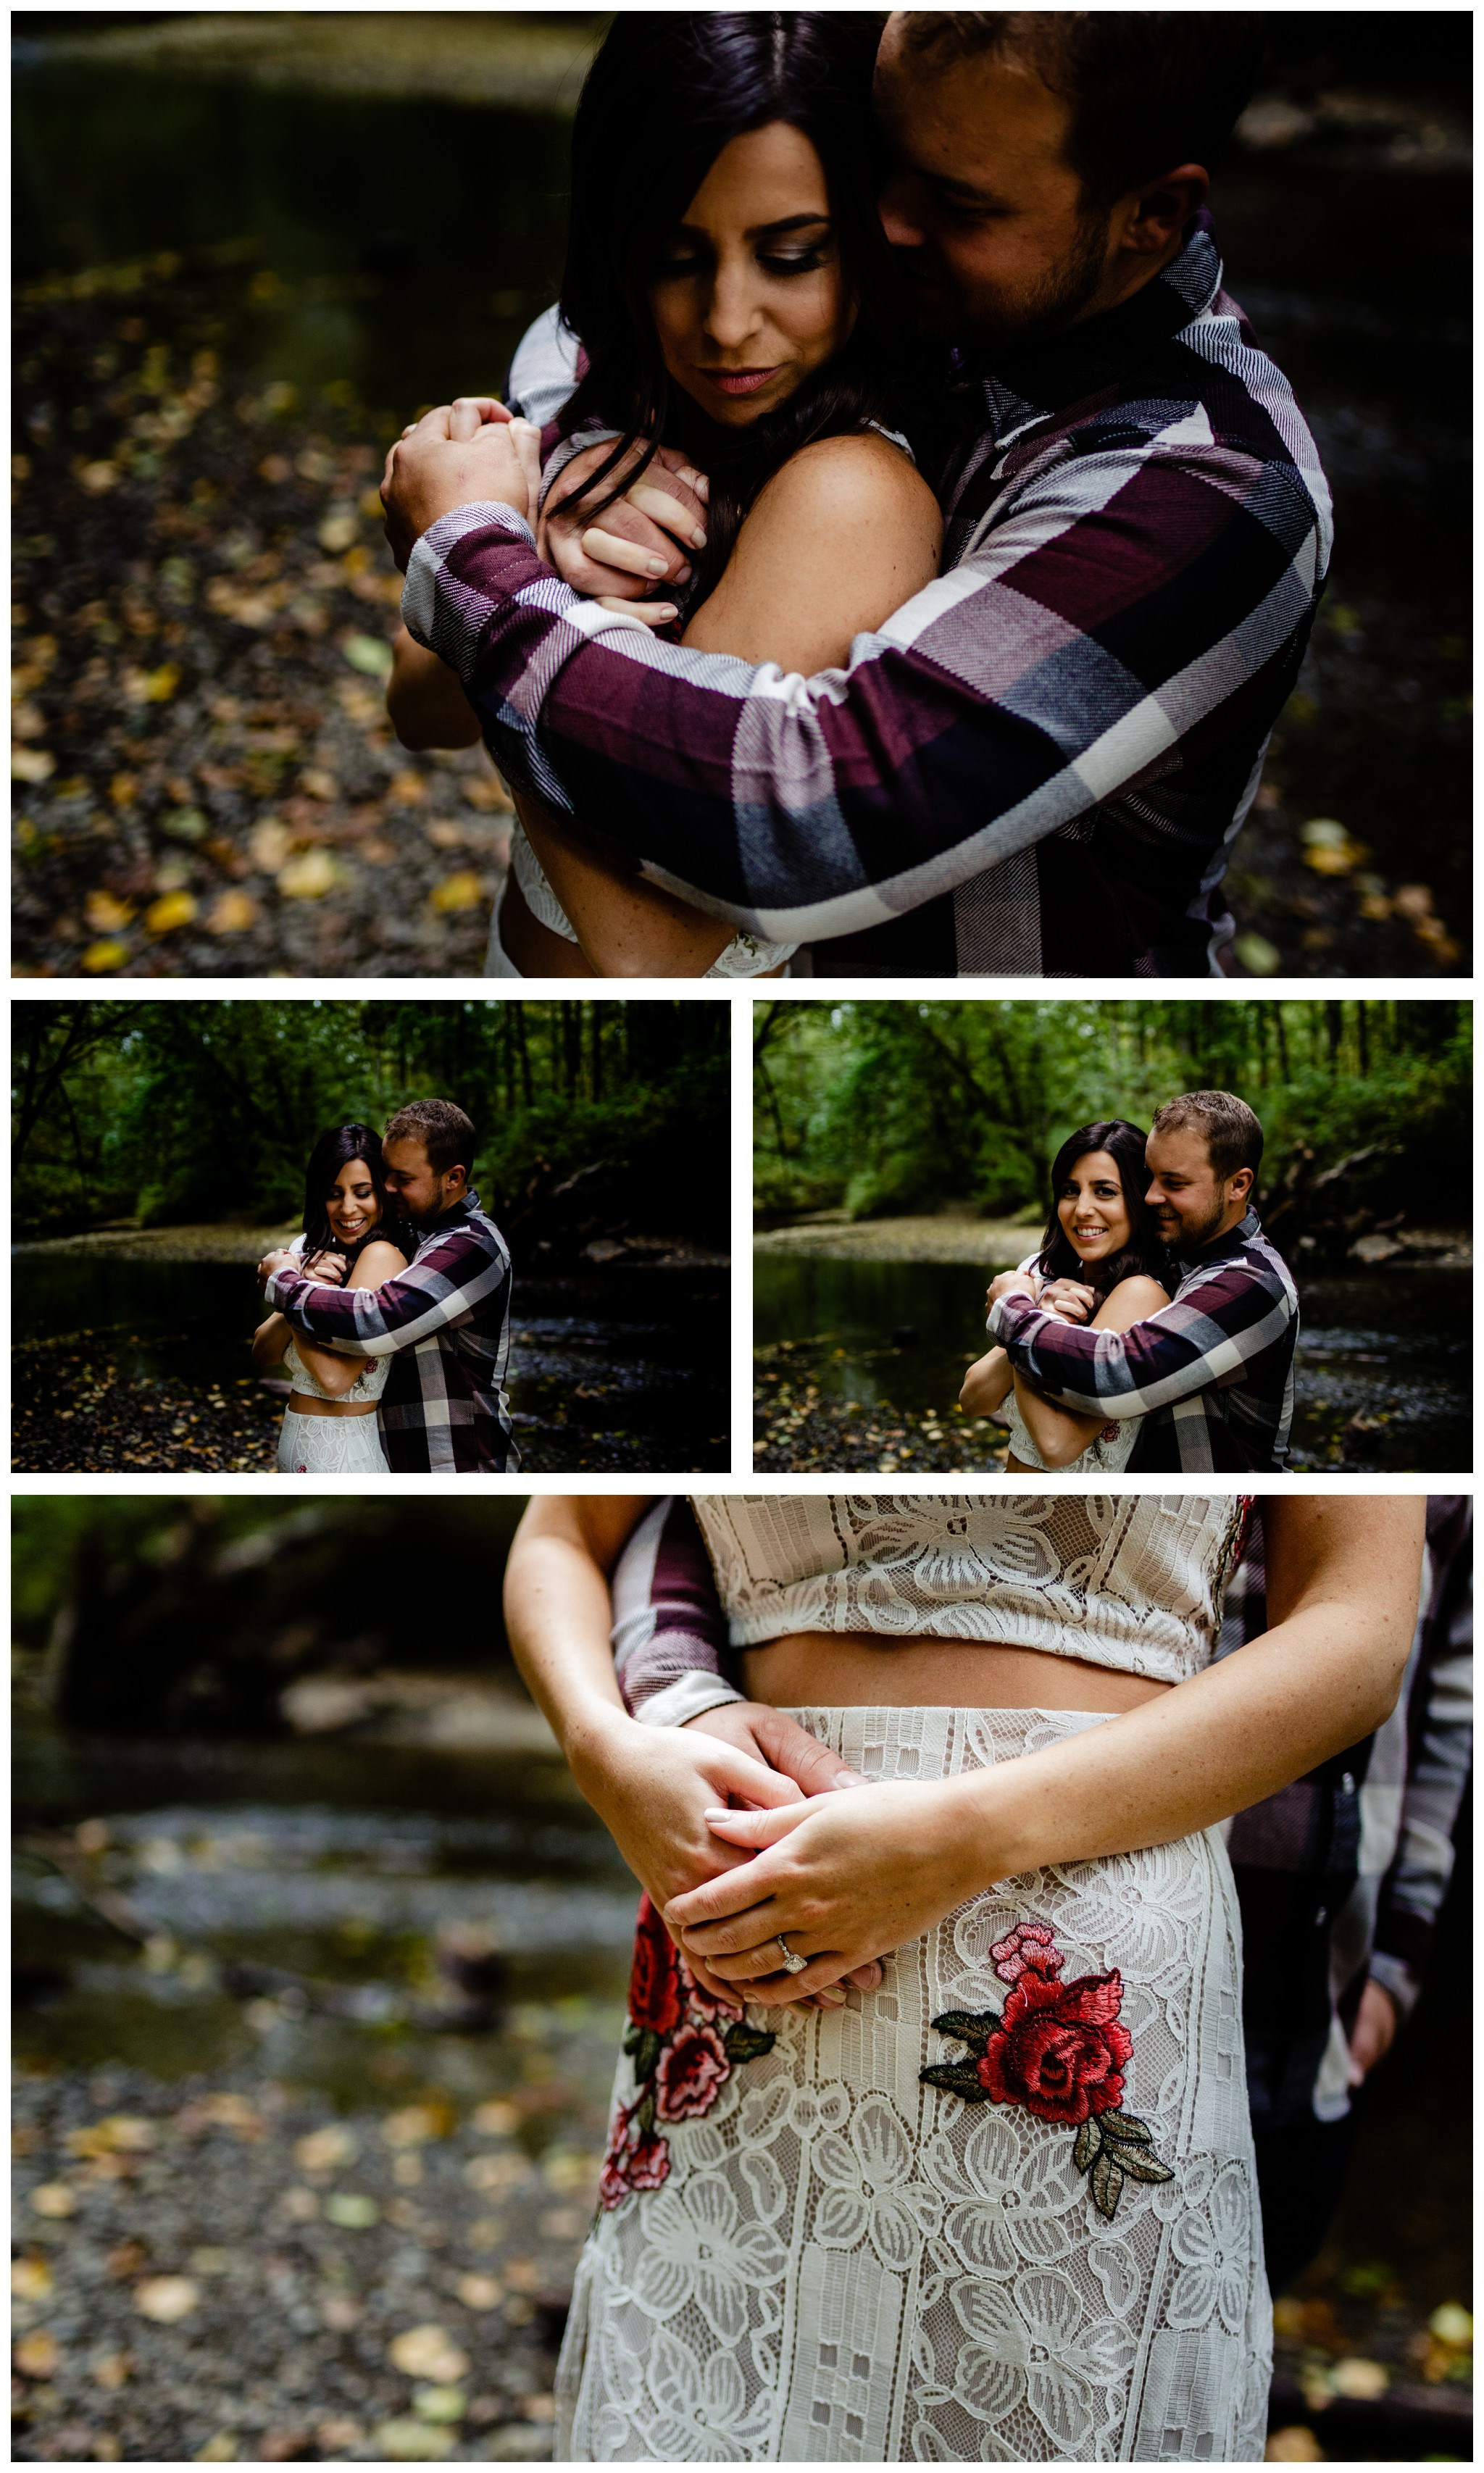 Williams Park Aldergrove Engagement Photographer Moody Fall Couple River Water Romantic Pose Yellow Leaves White Dress Dark_0002.jpg